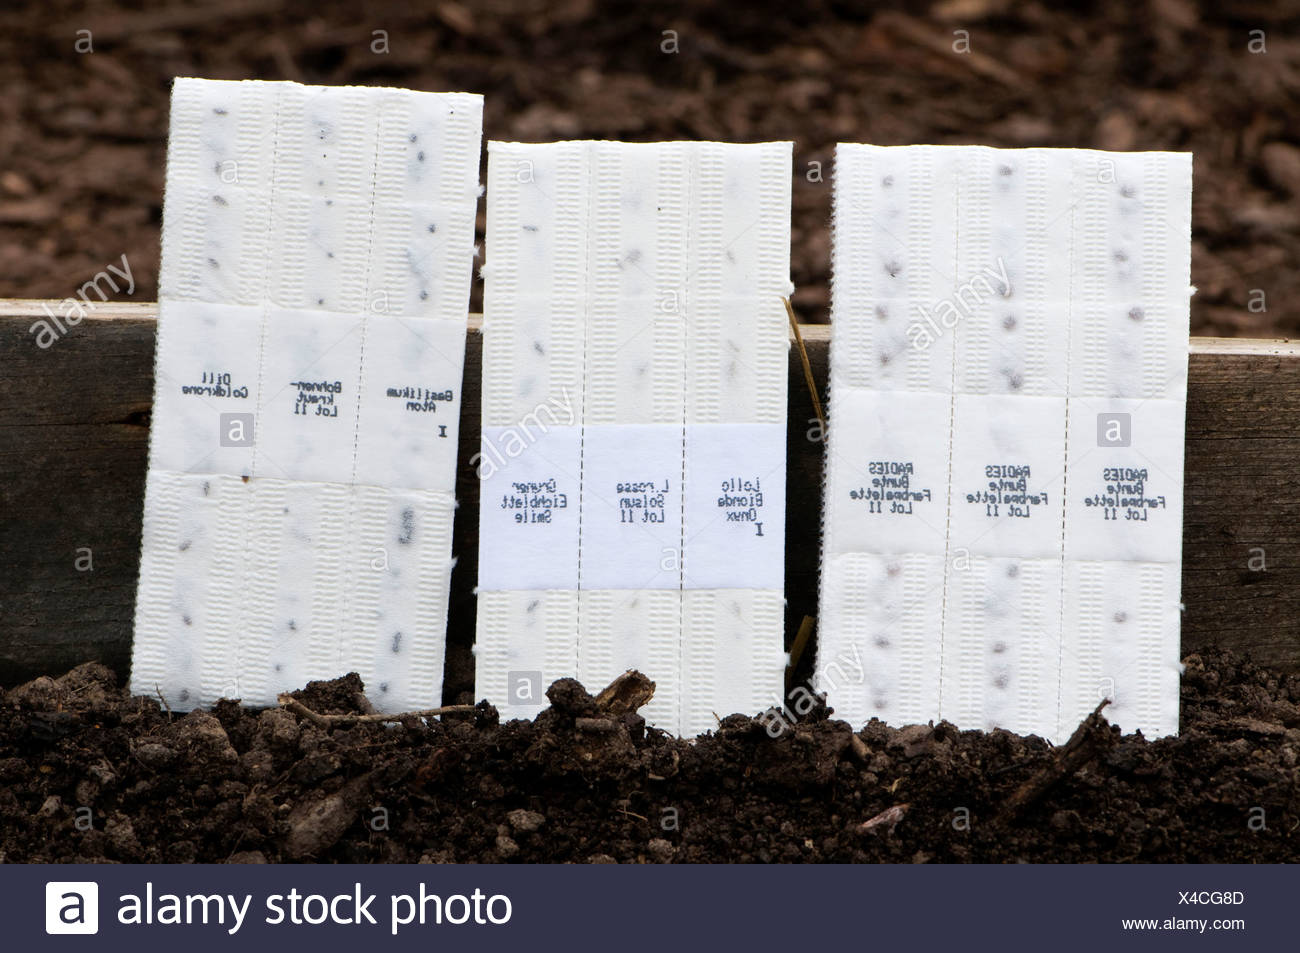 Strips of paper with seed / sowing - Stock Image